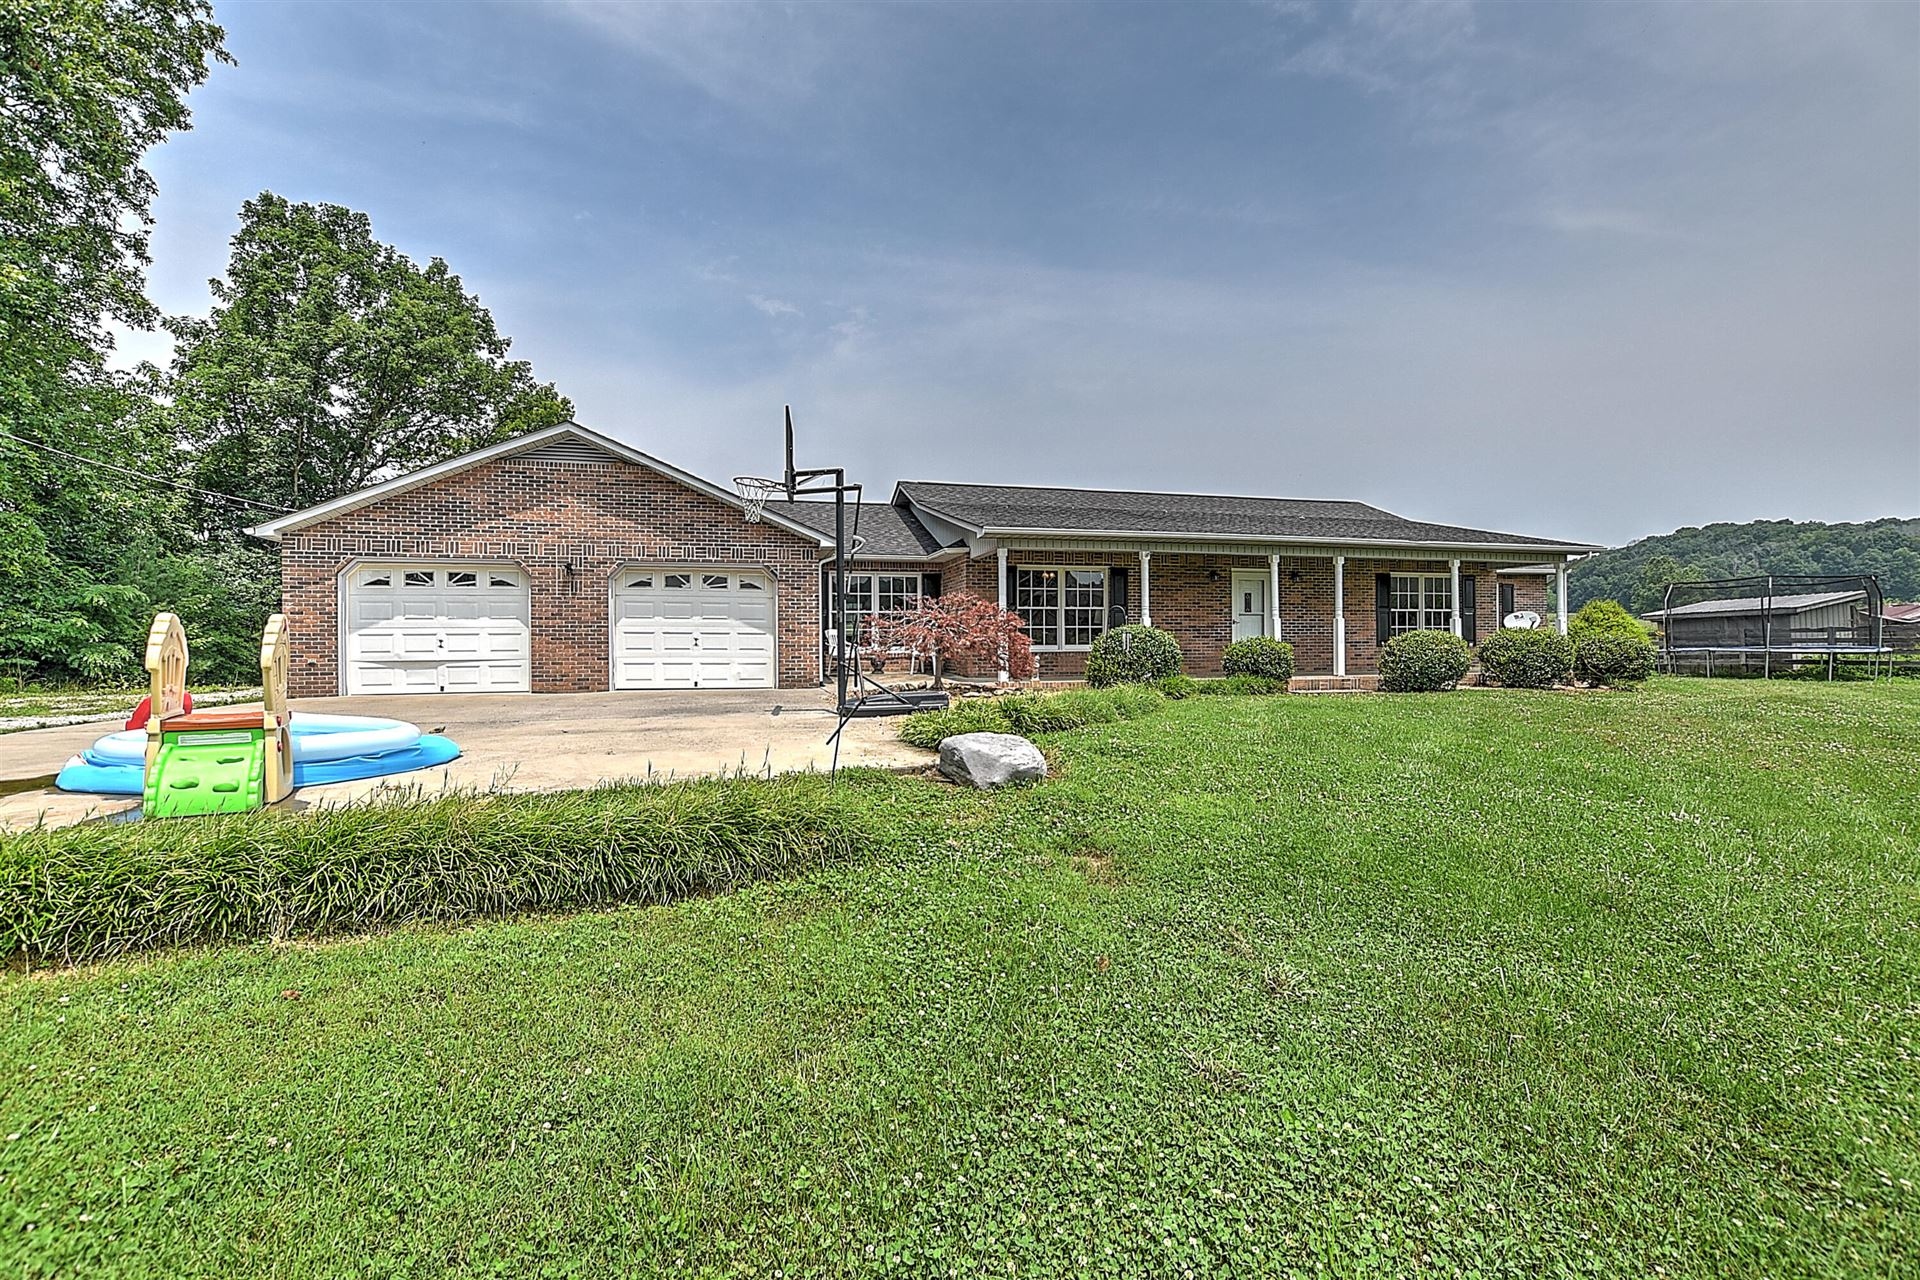 Photo of 322 Coxes Springs Road, Fall Branch, TN 37656 (MLS # 9930254)